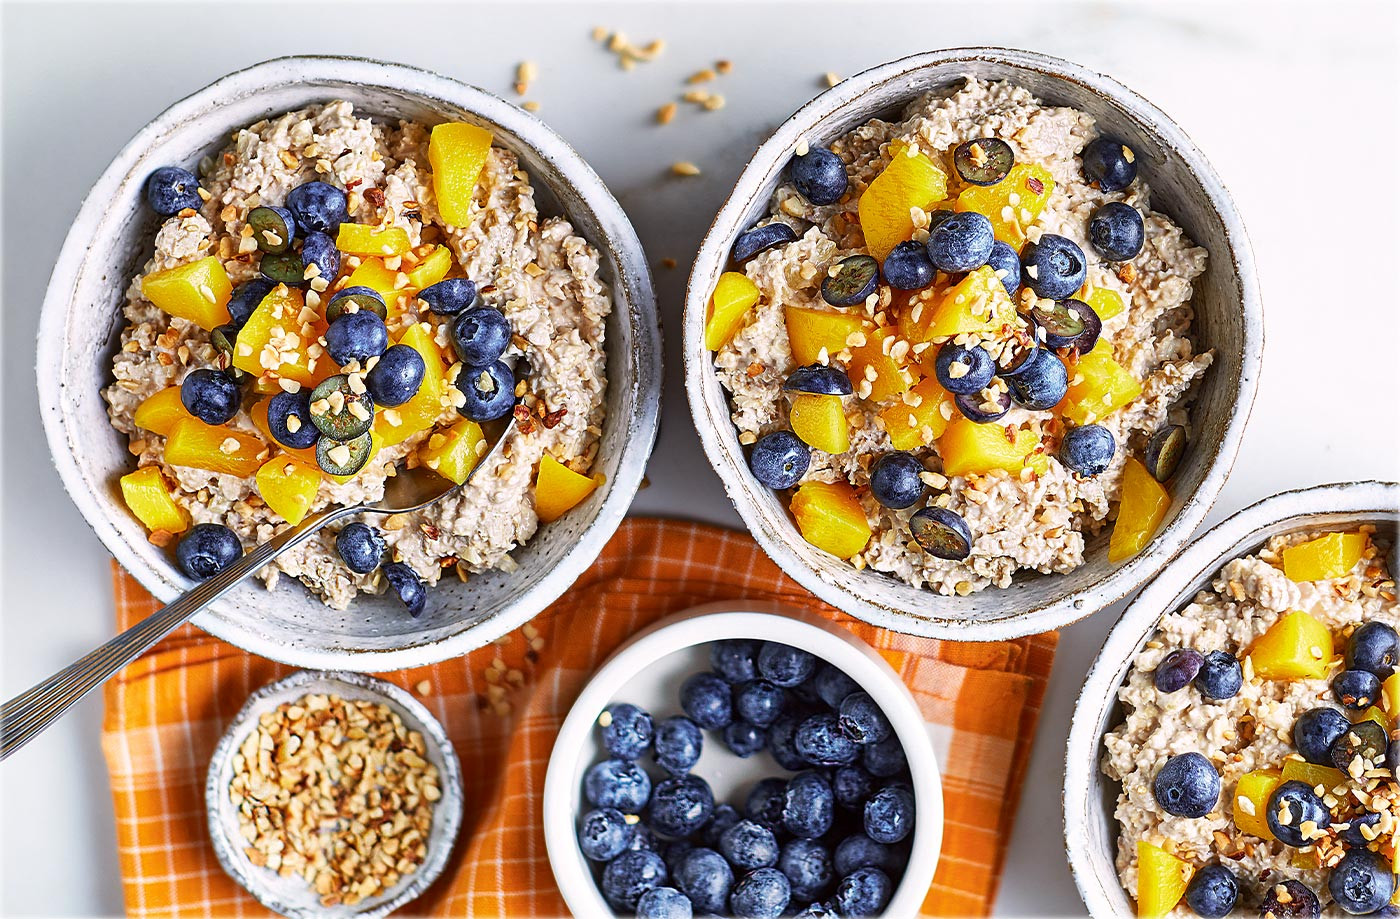 Healthy Oatmeal Ideas For Breakfast  10 healthy breakfast ideas